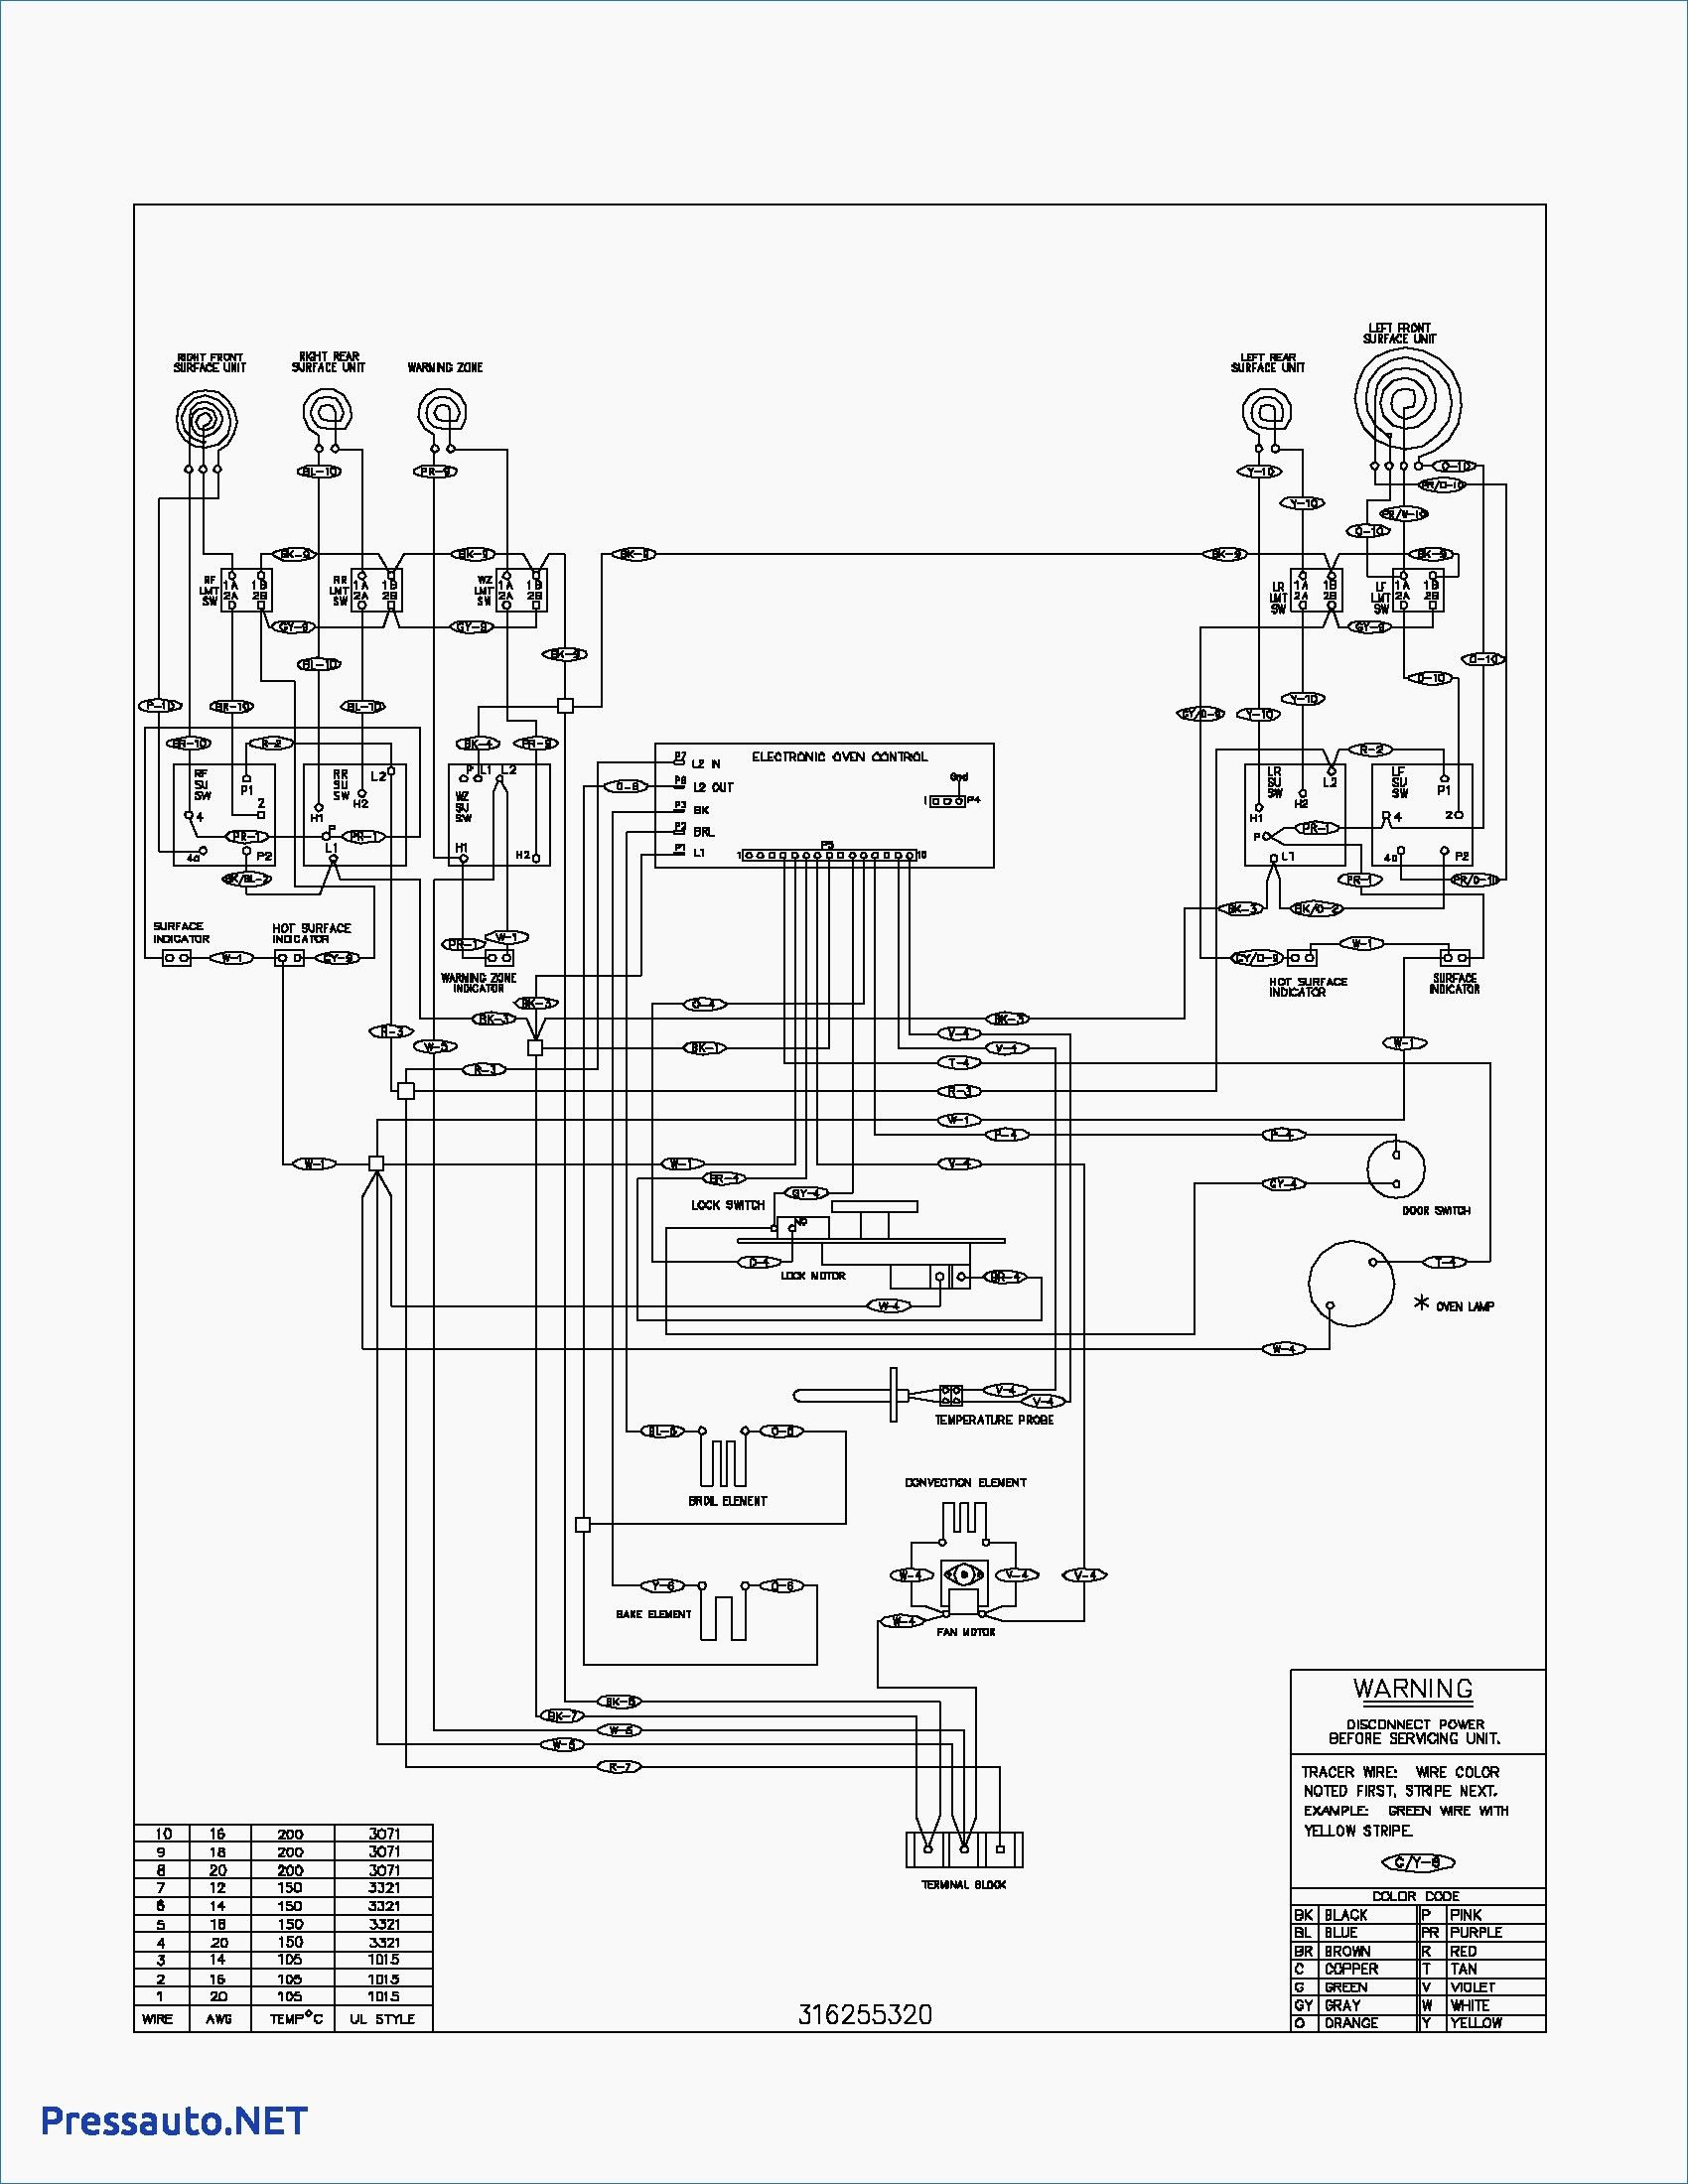 22 Clever Car Wiring Diagrams Explained Design ,  https://bacamajalah.com/22-clever-car-wiring-diagrams-explaine… | Electric  stove, Electrical diagram, Electric ovenPinterest